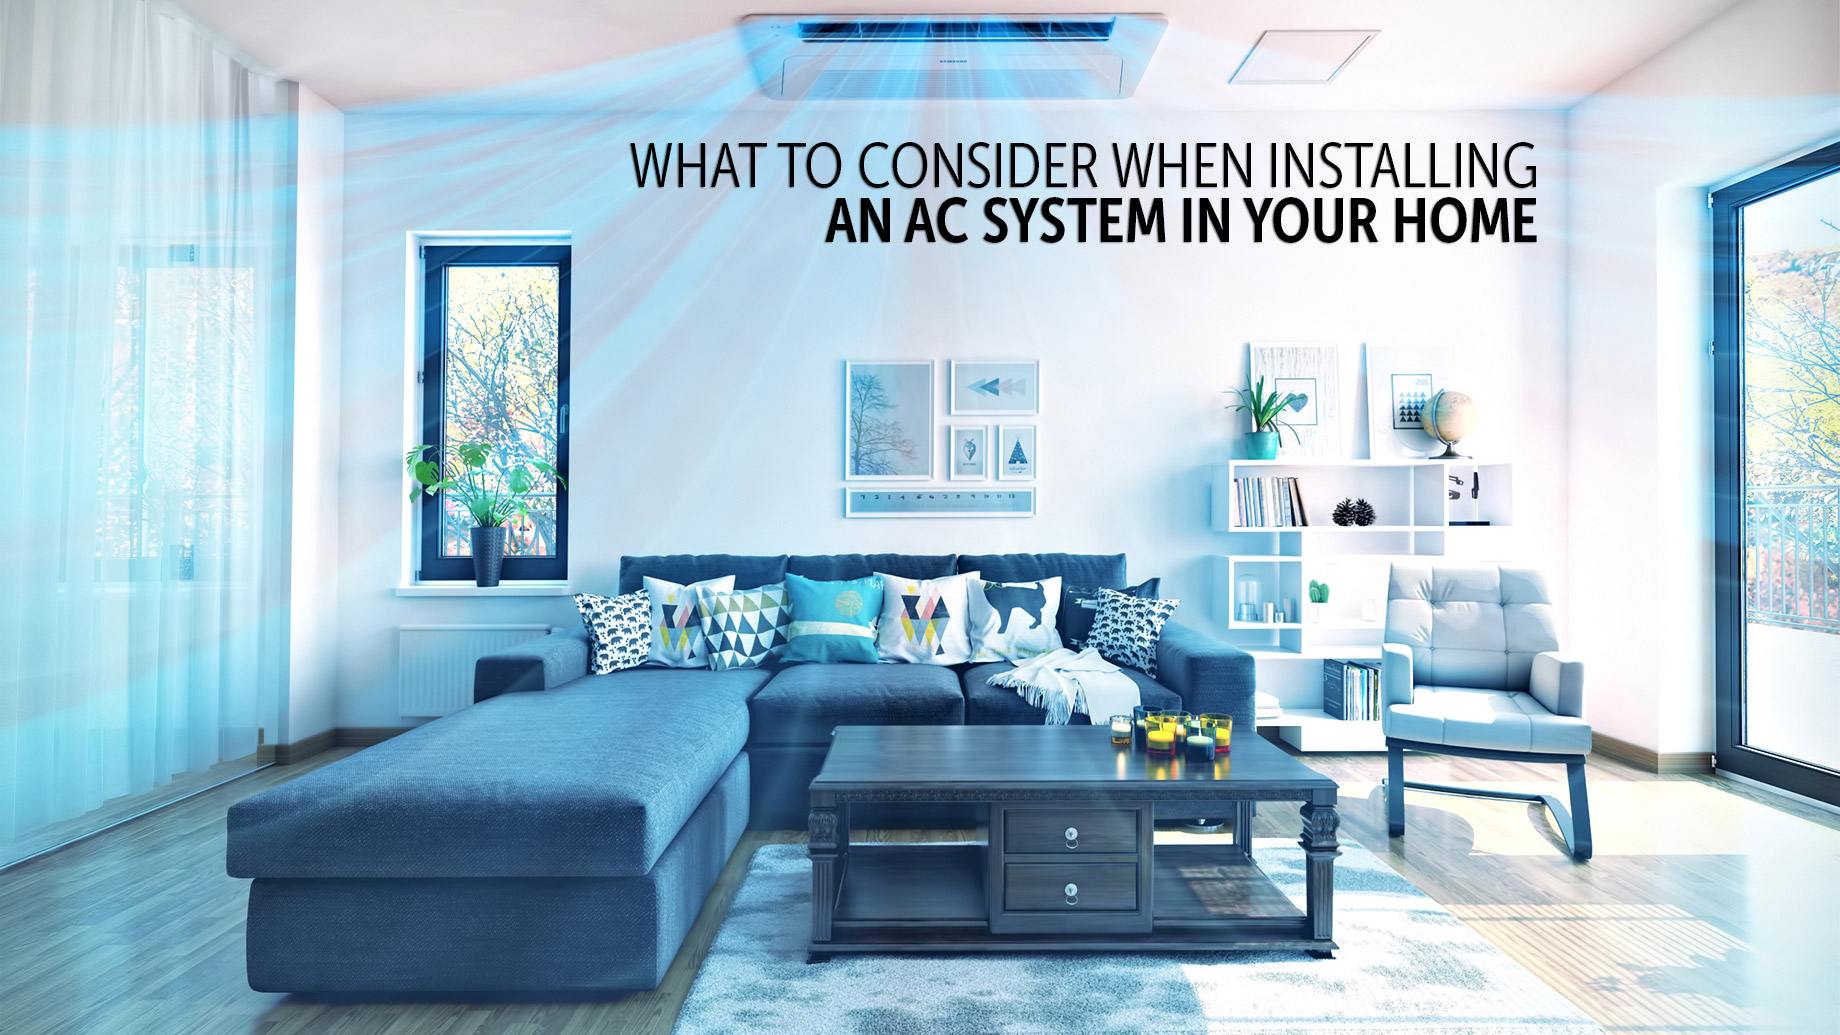 Real Estate Essentials - What To Consider When Installing An AC System In Your Home